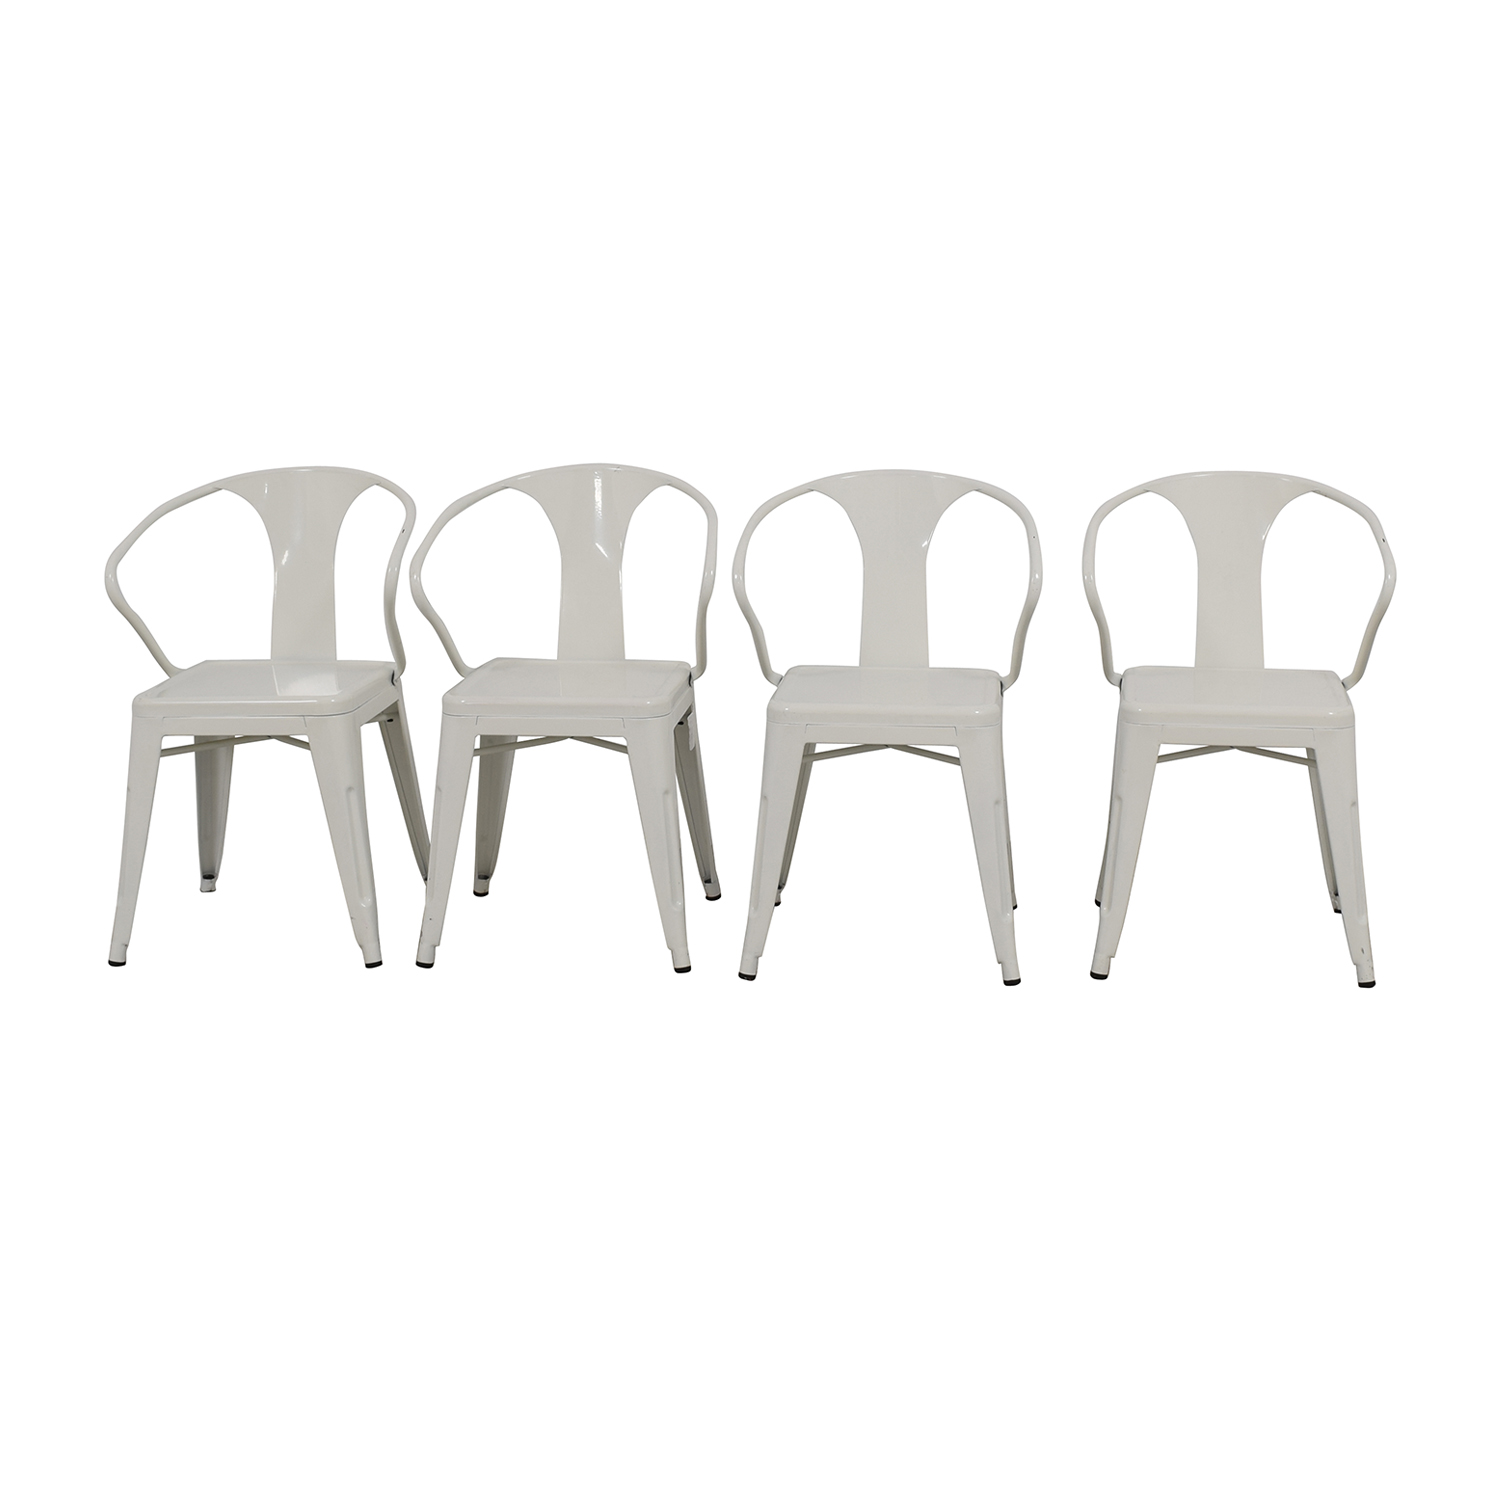 Ordinaire Overstock Overstock White European Chairs Used ...